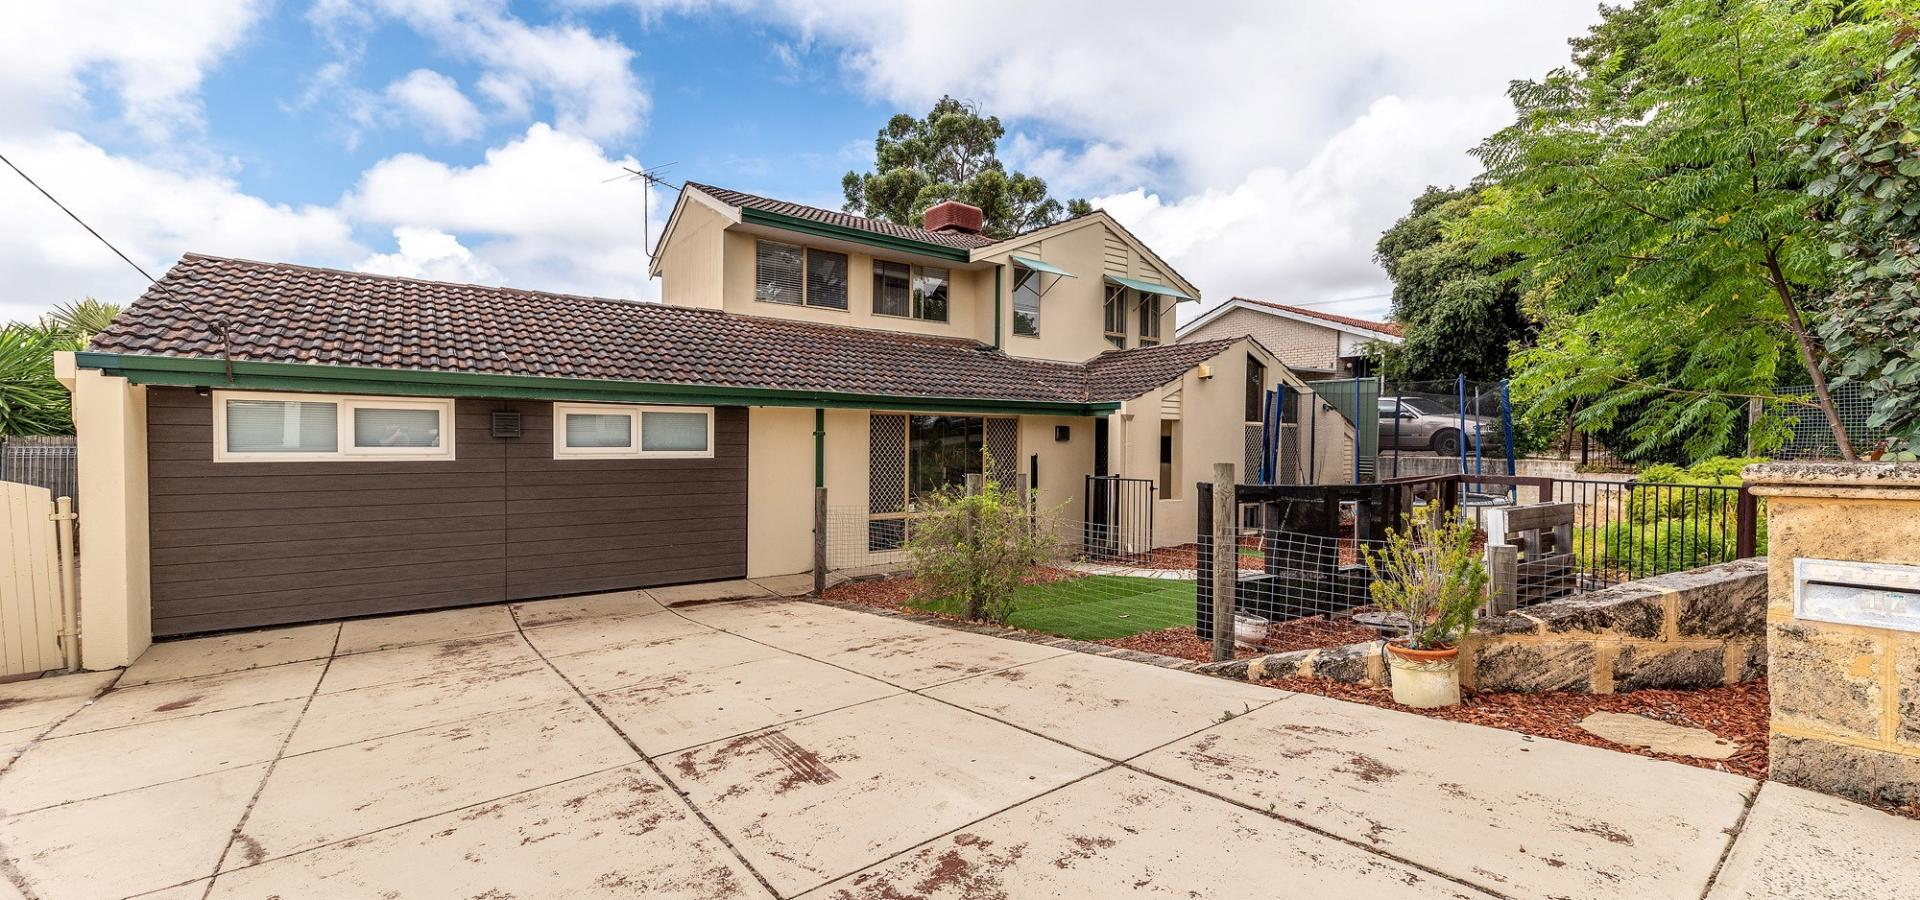 NEW PRICE!!  GREAT FAMILY HOME IN A FANTASTIC LOCATION!